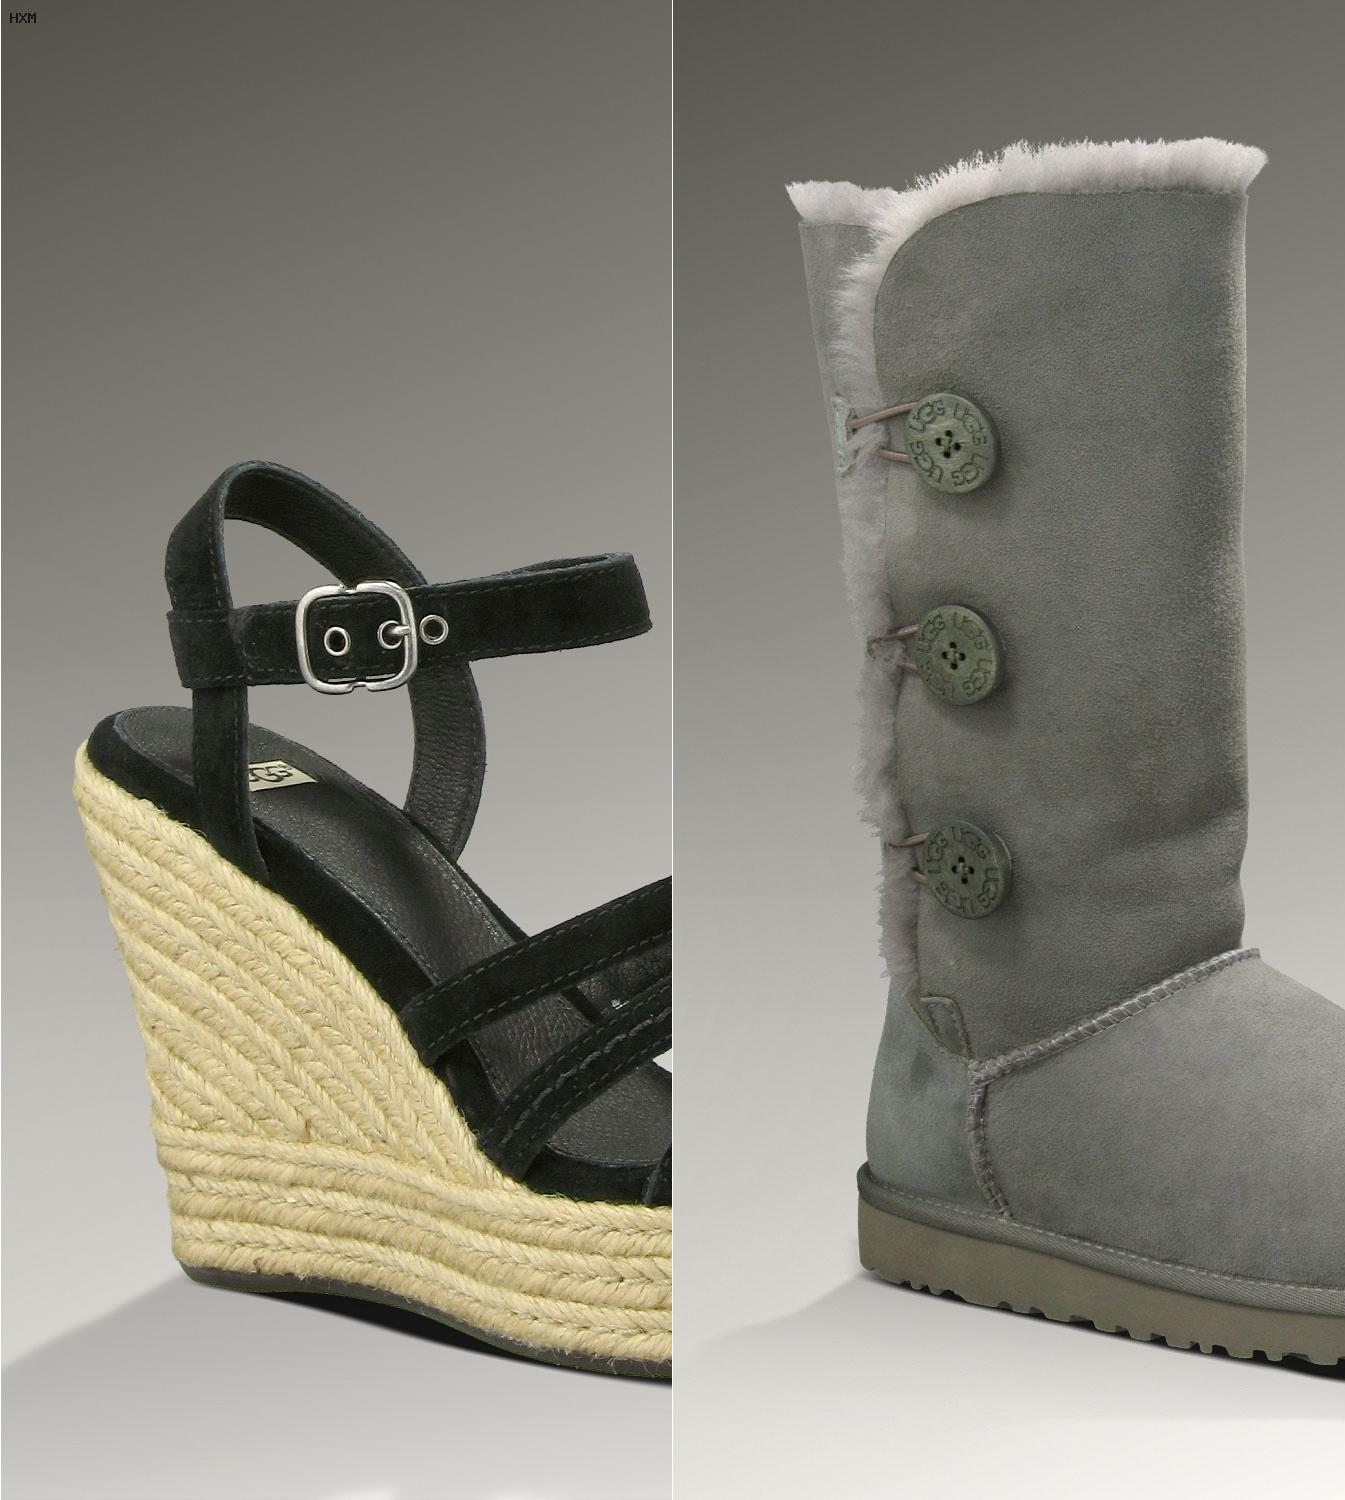 acquisto on line ugg boots